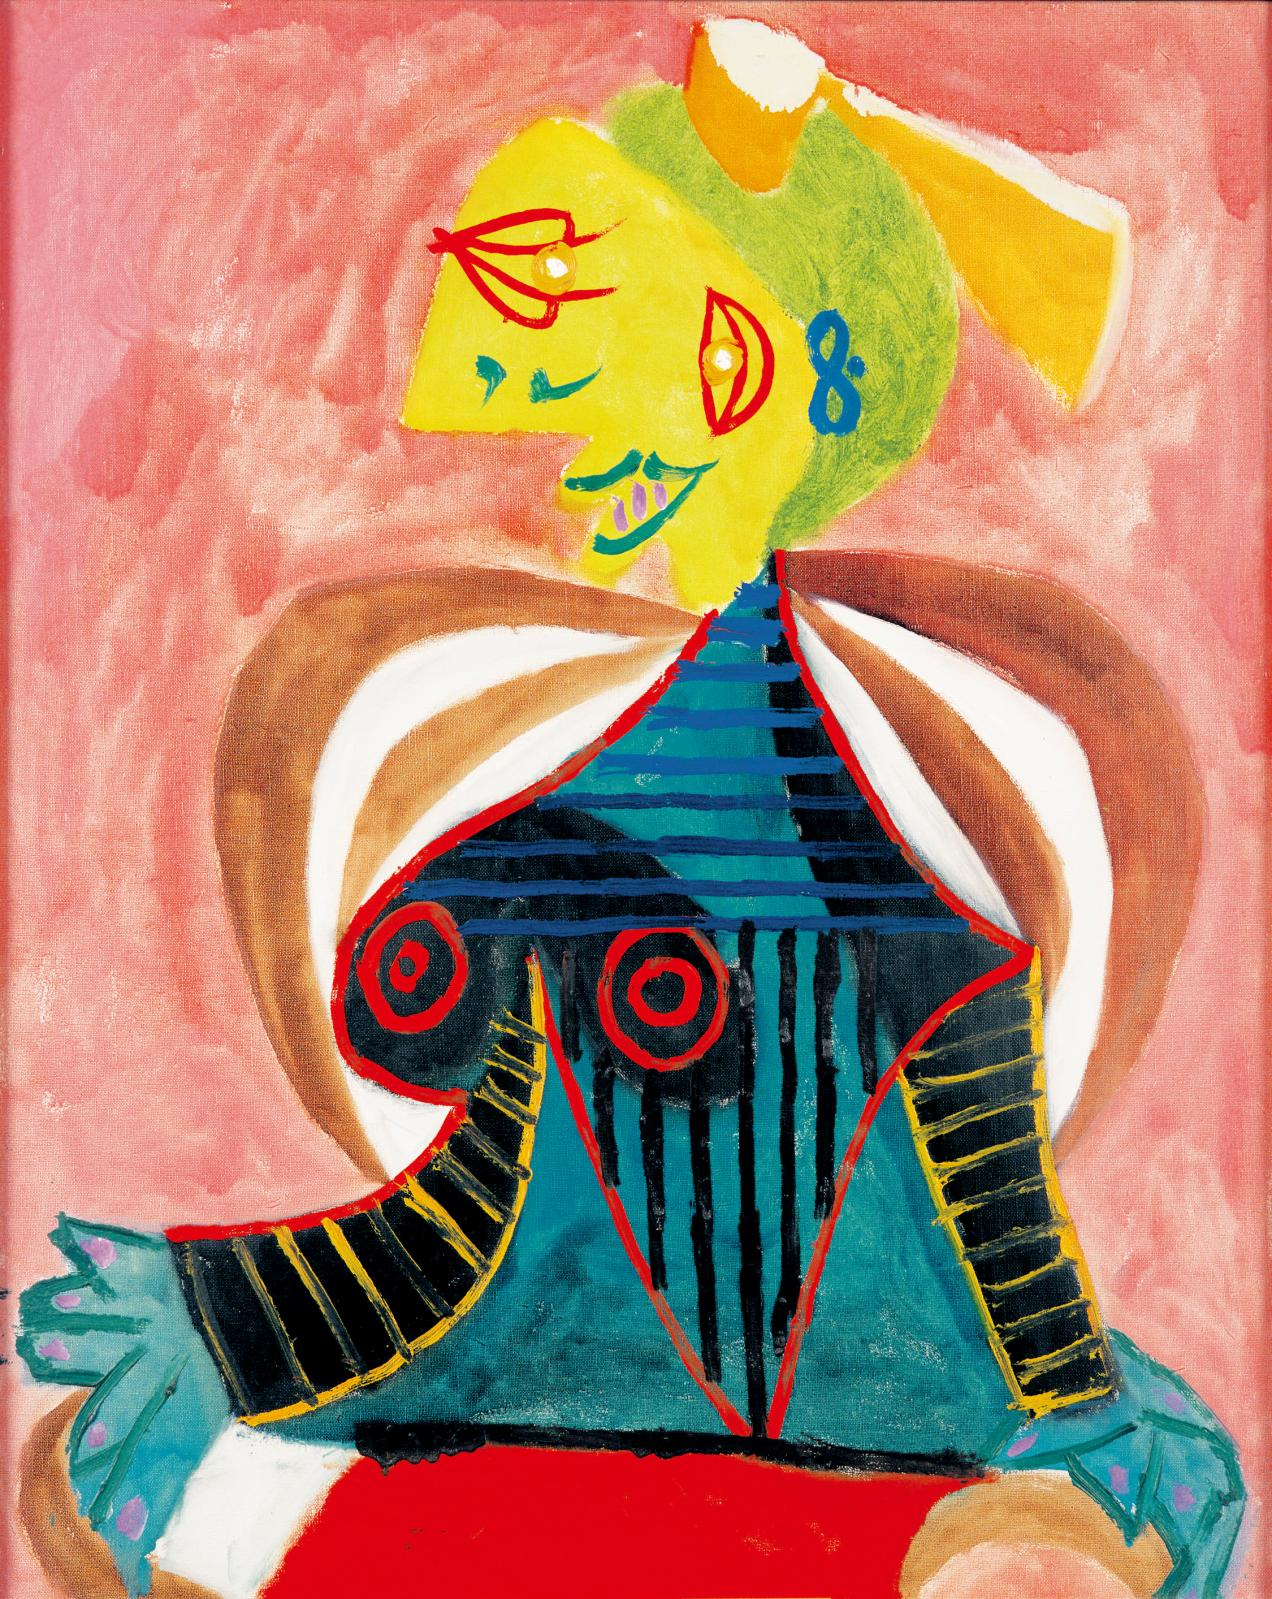 Pablo Picasso, Portrait of Lee Miller as an Arlésienne, 1937, oil on canvas, state repository at the Musée Réattu, 1990